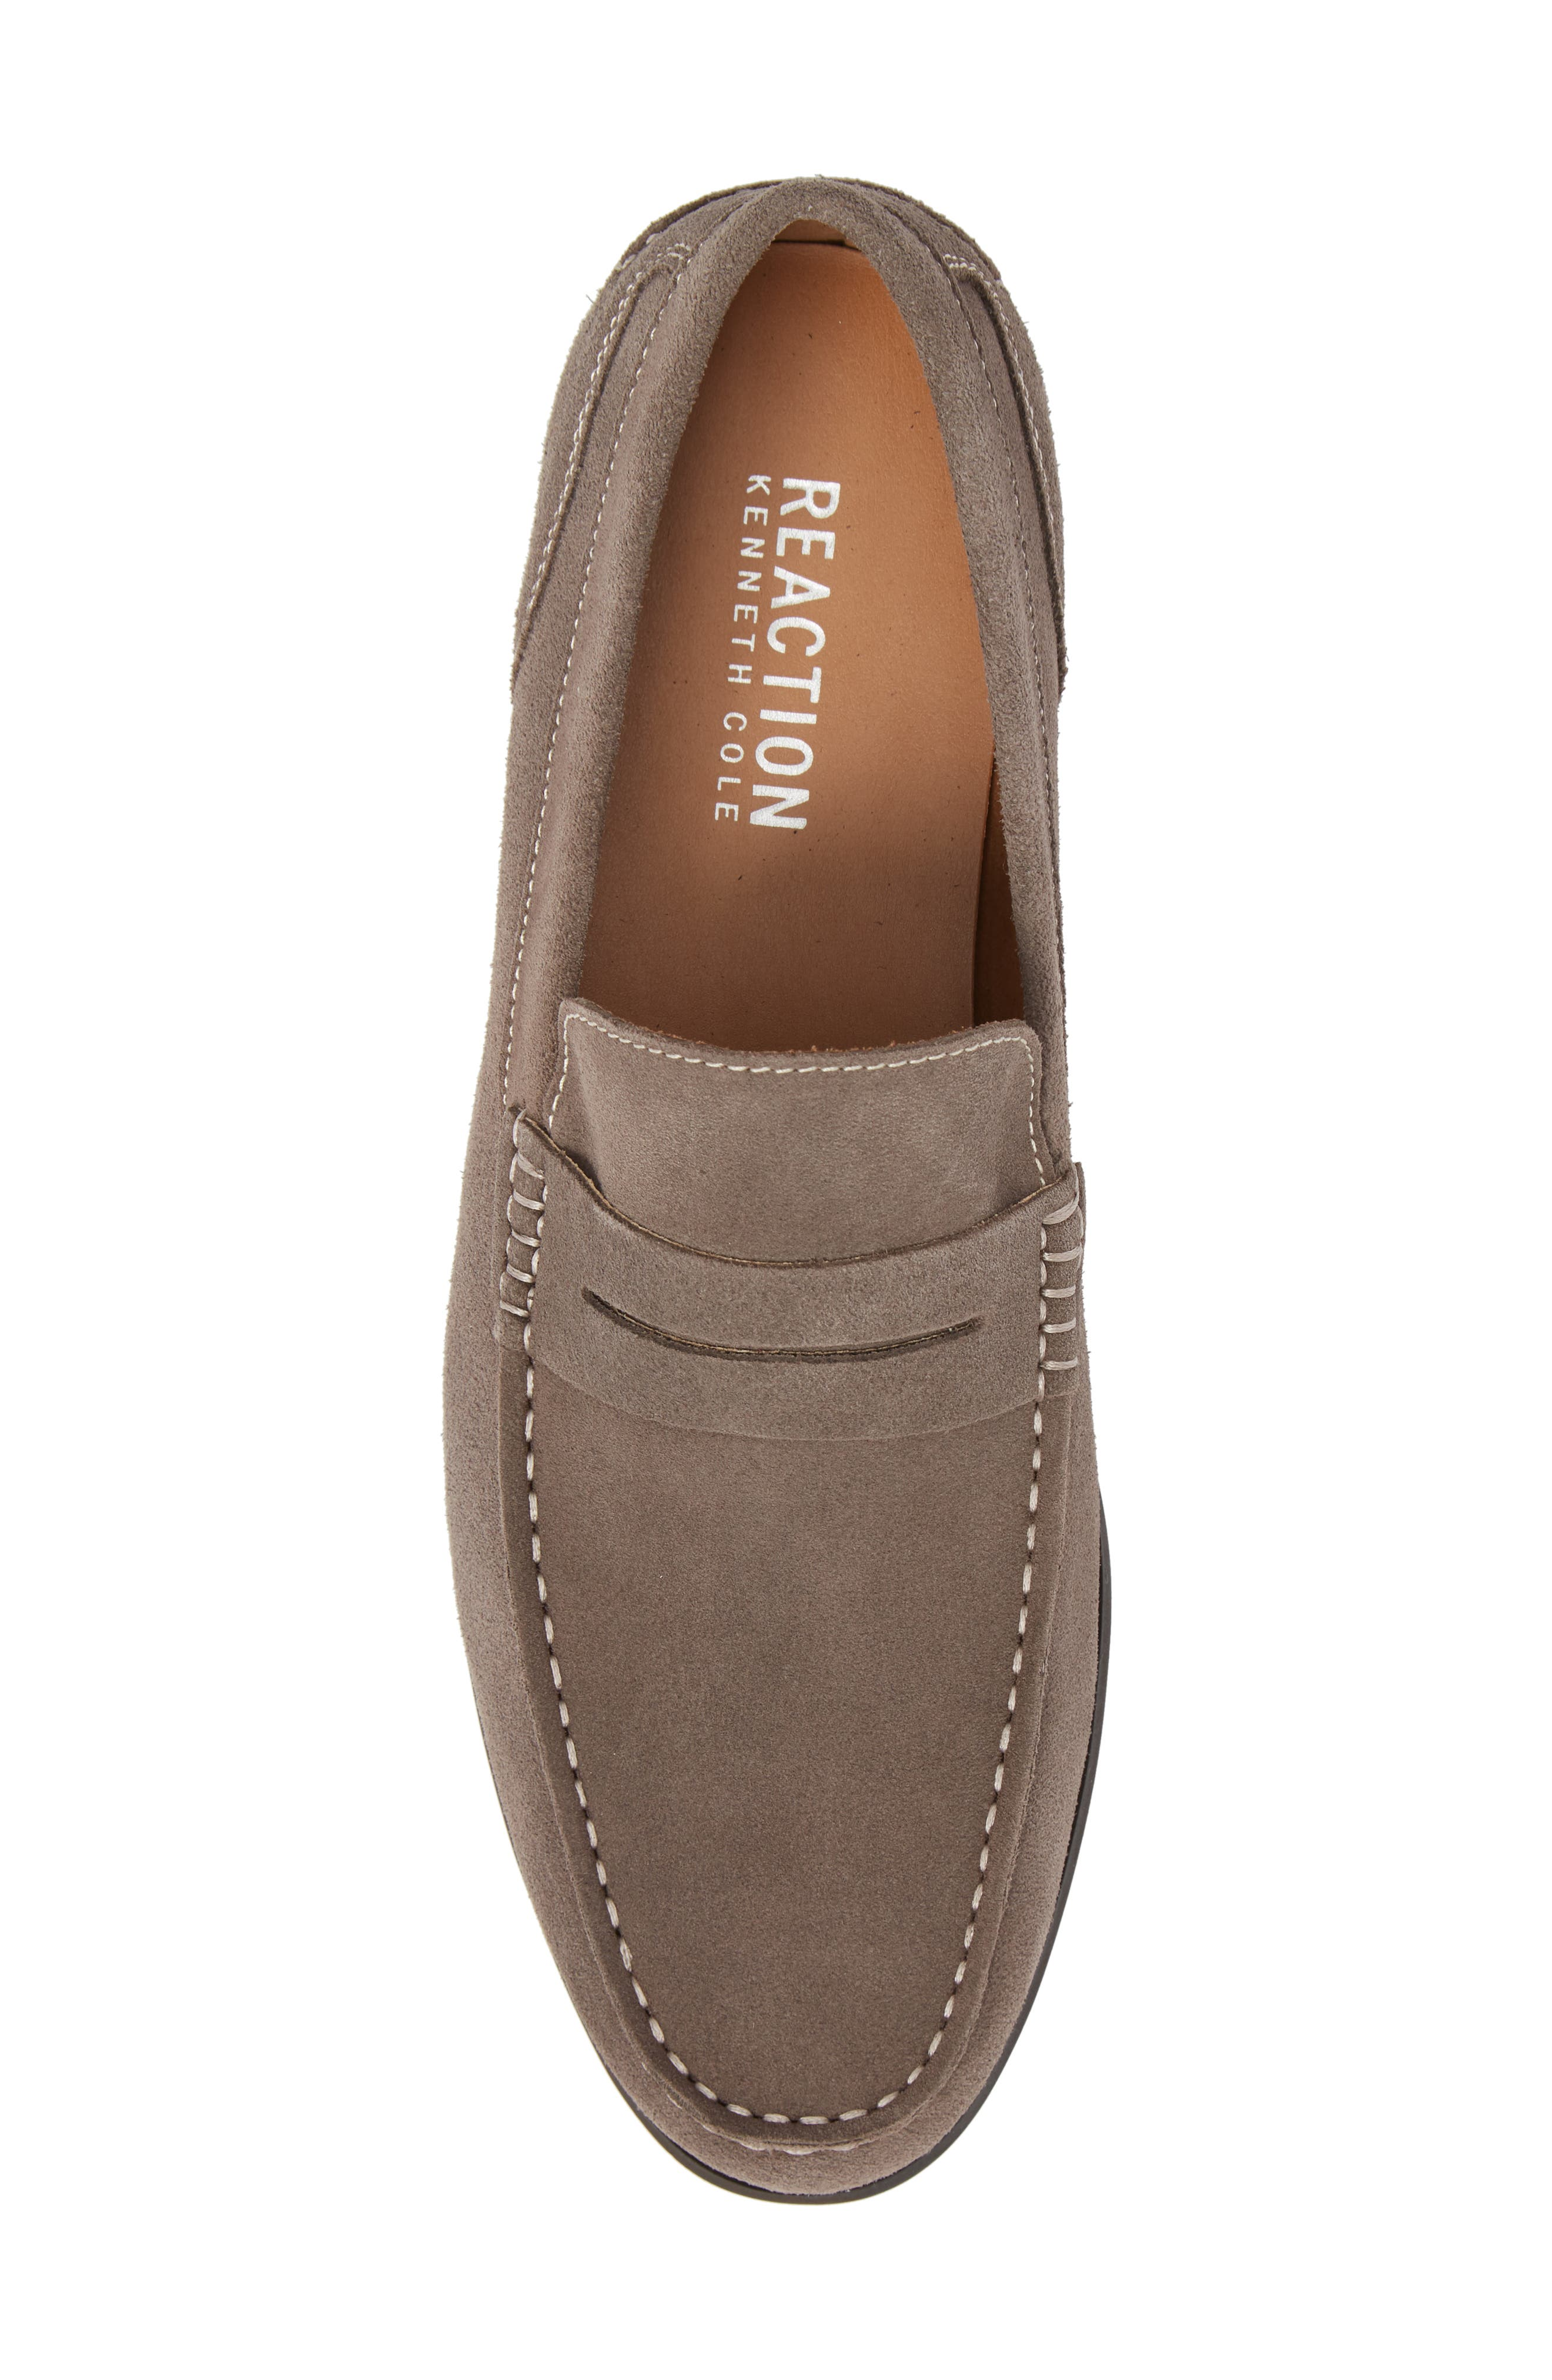 Crespo Penny Loafer,                             Alternate thumbnail 5, color,                             020